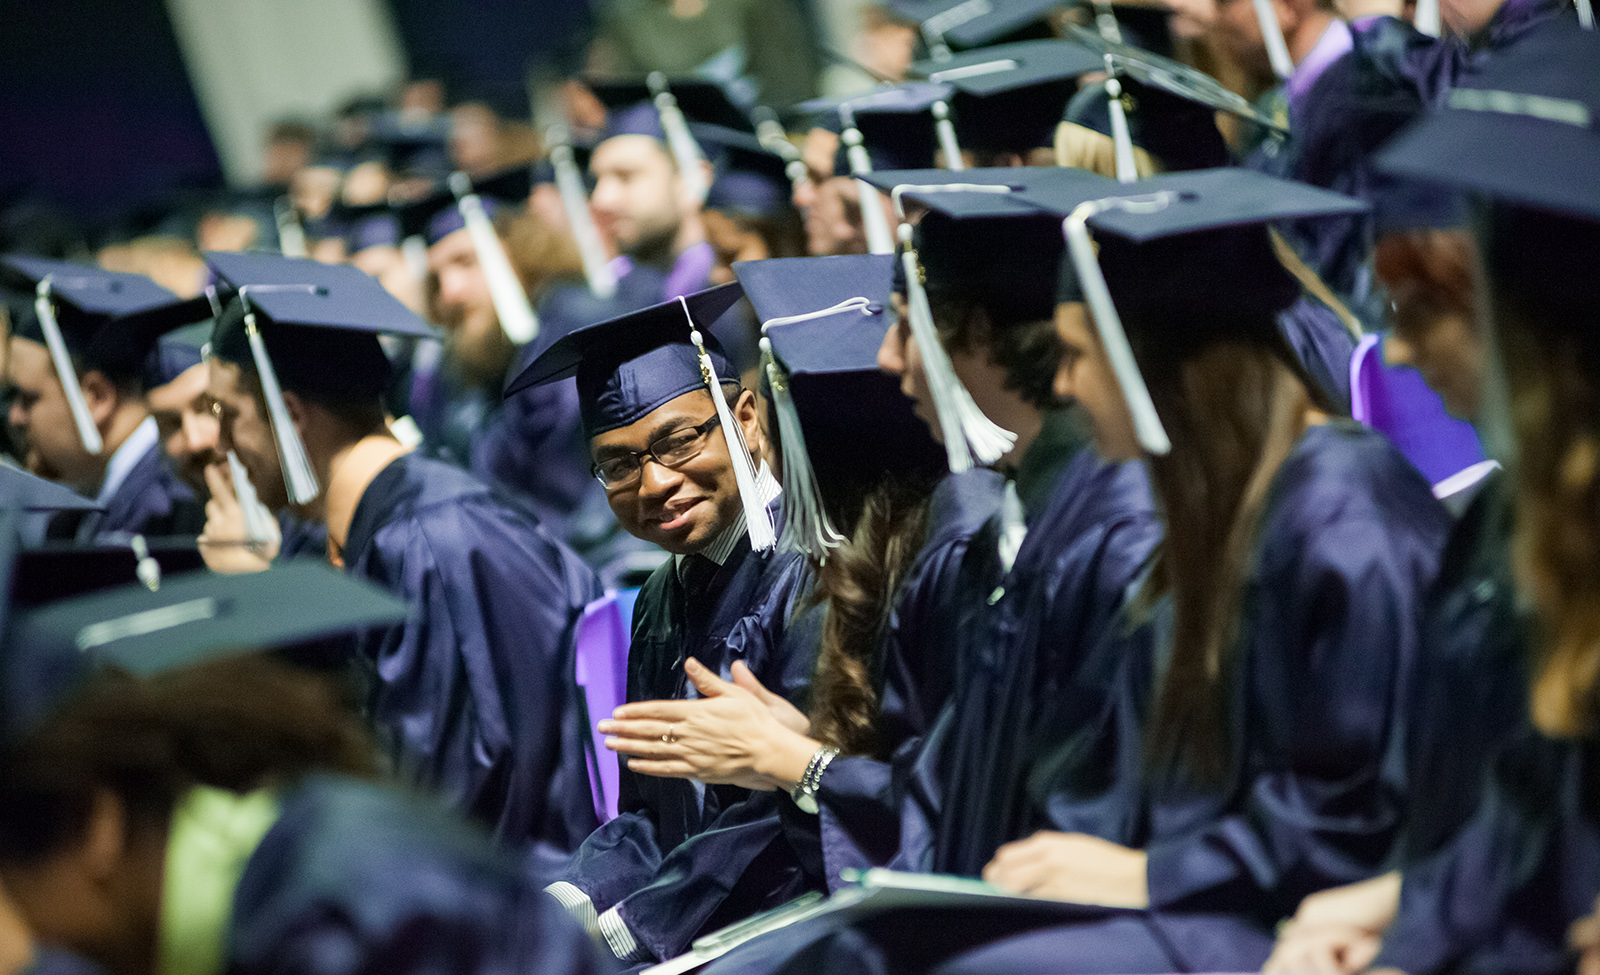 A Penn State graduate smiles at his peers during the commencement ceremony